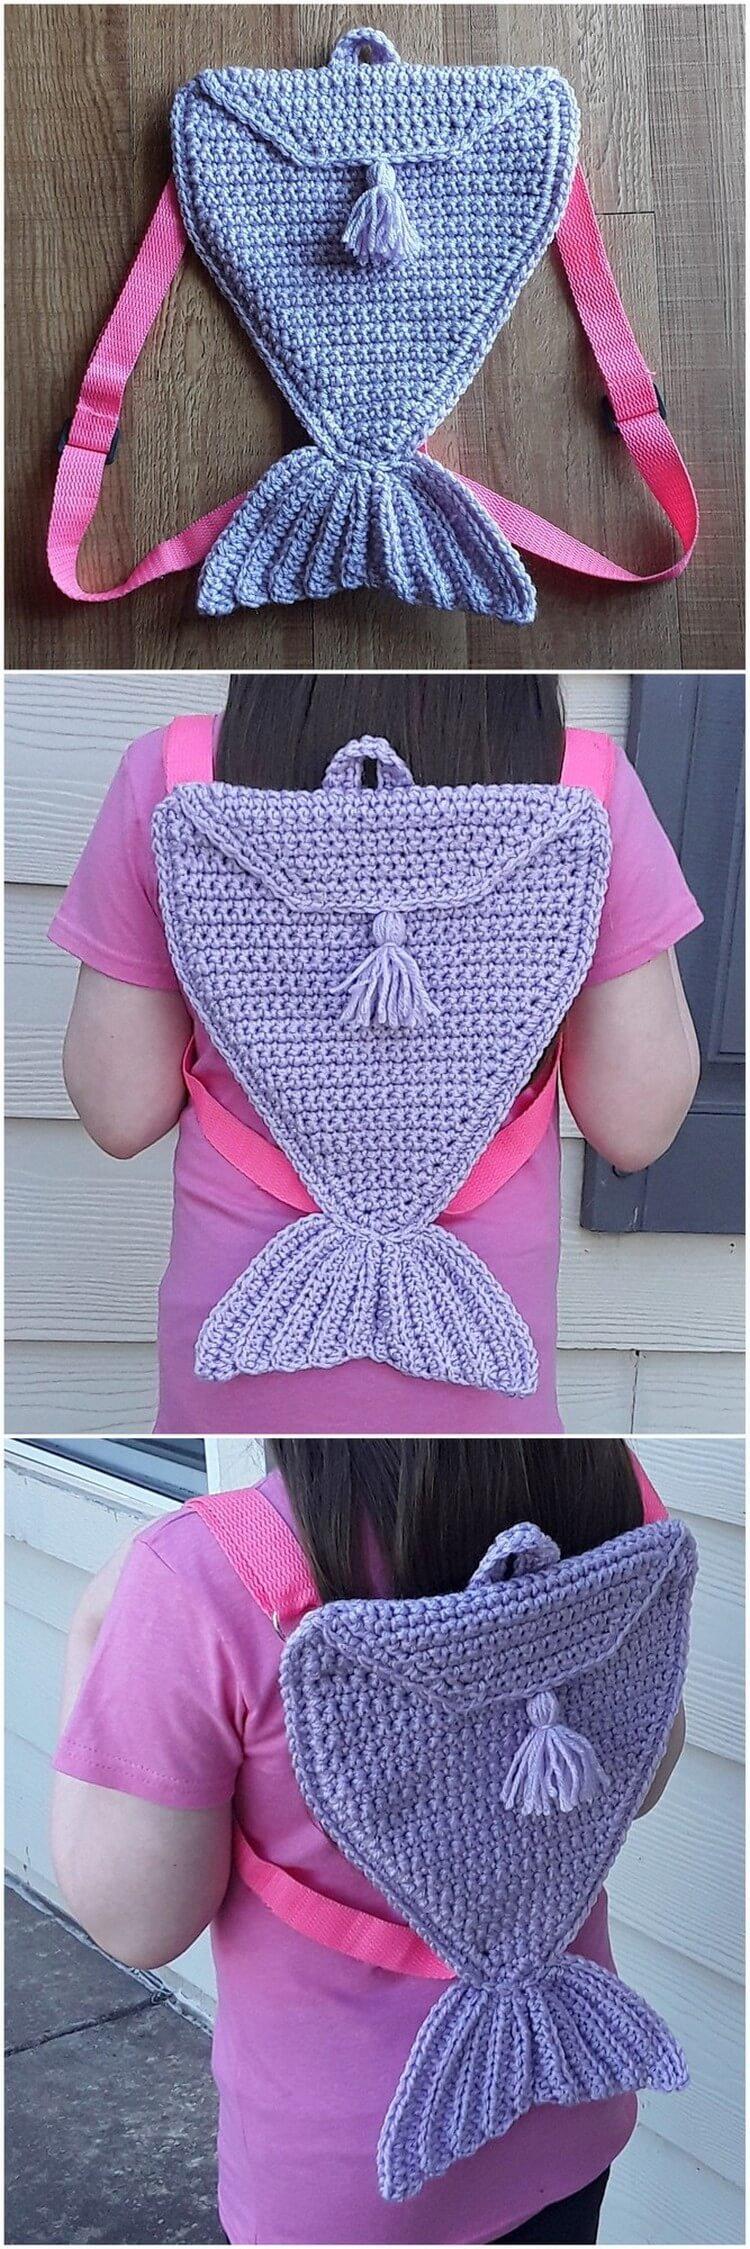 Crochet Backpack Pattern (24)